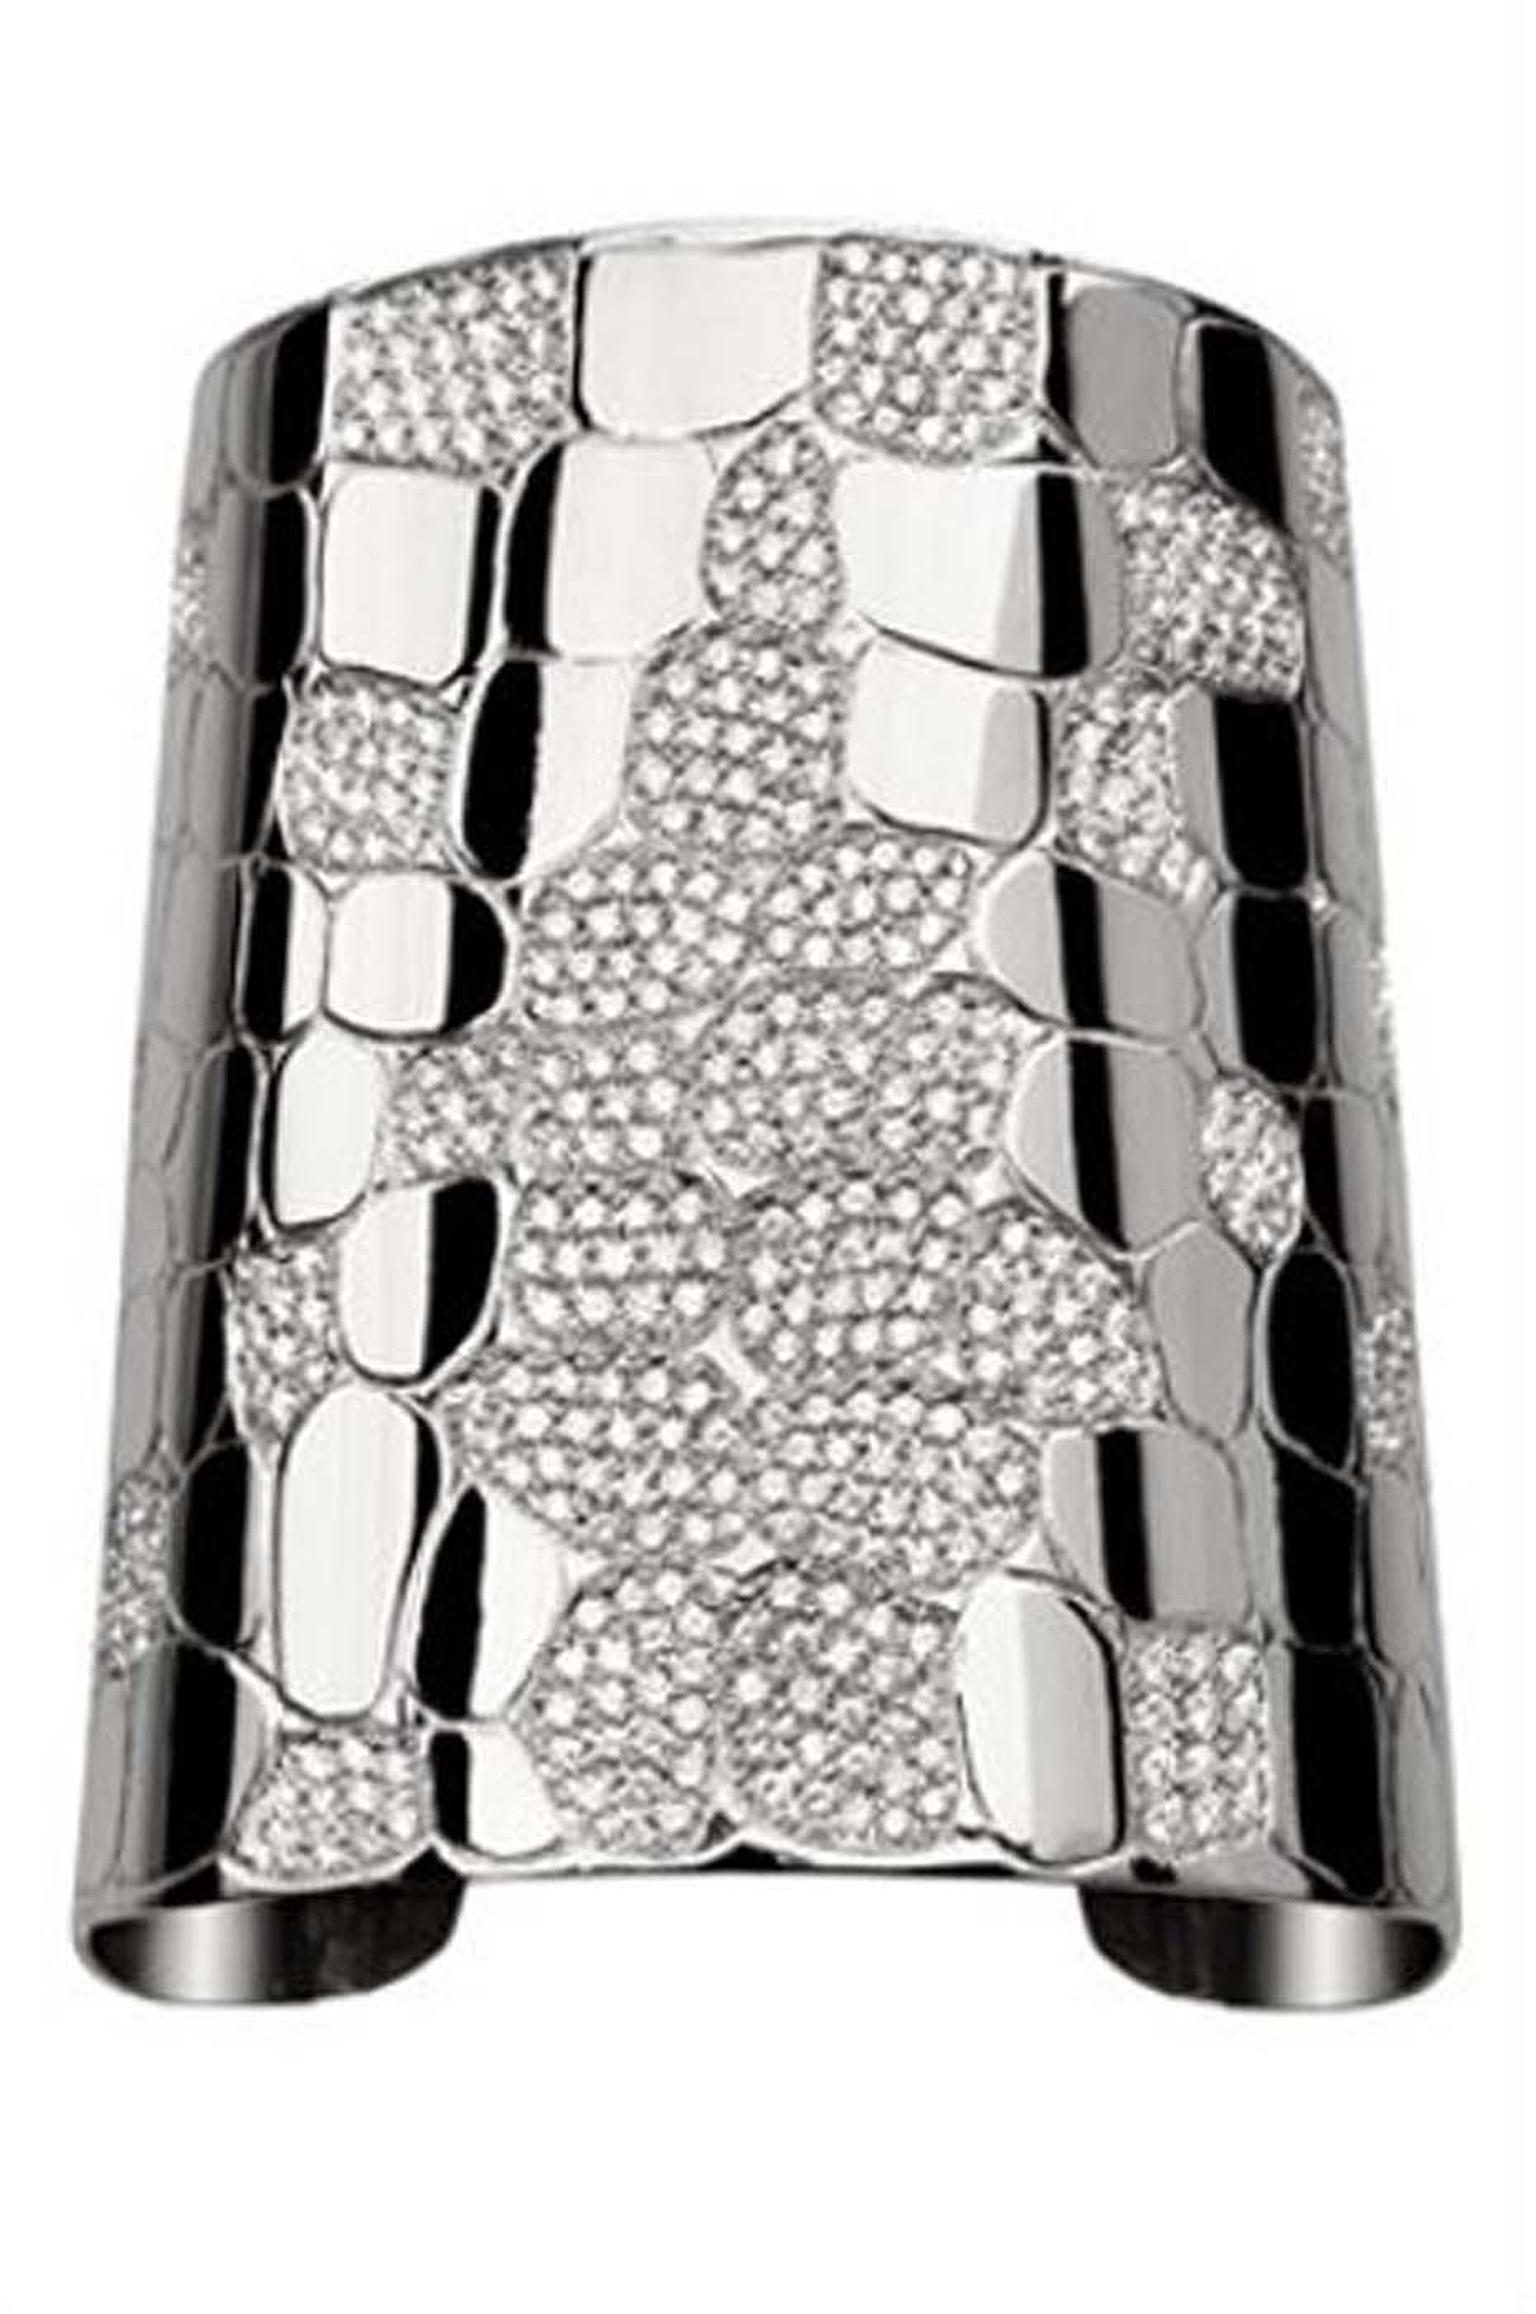 Elena Carrera Amazonia bracelet in white gold.